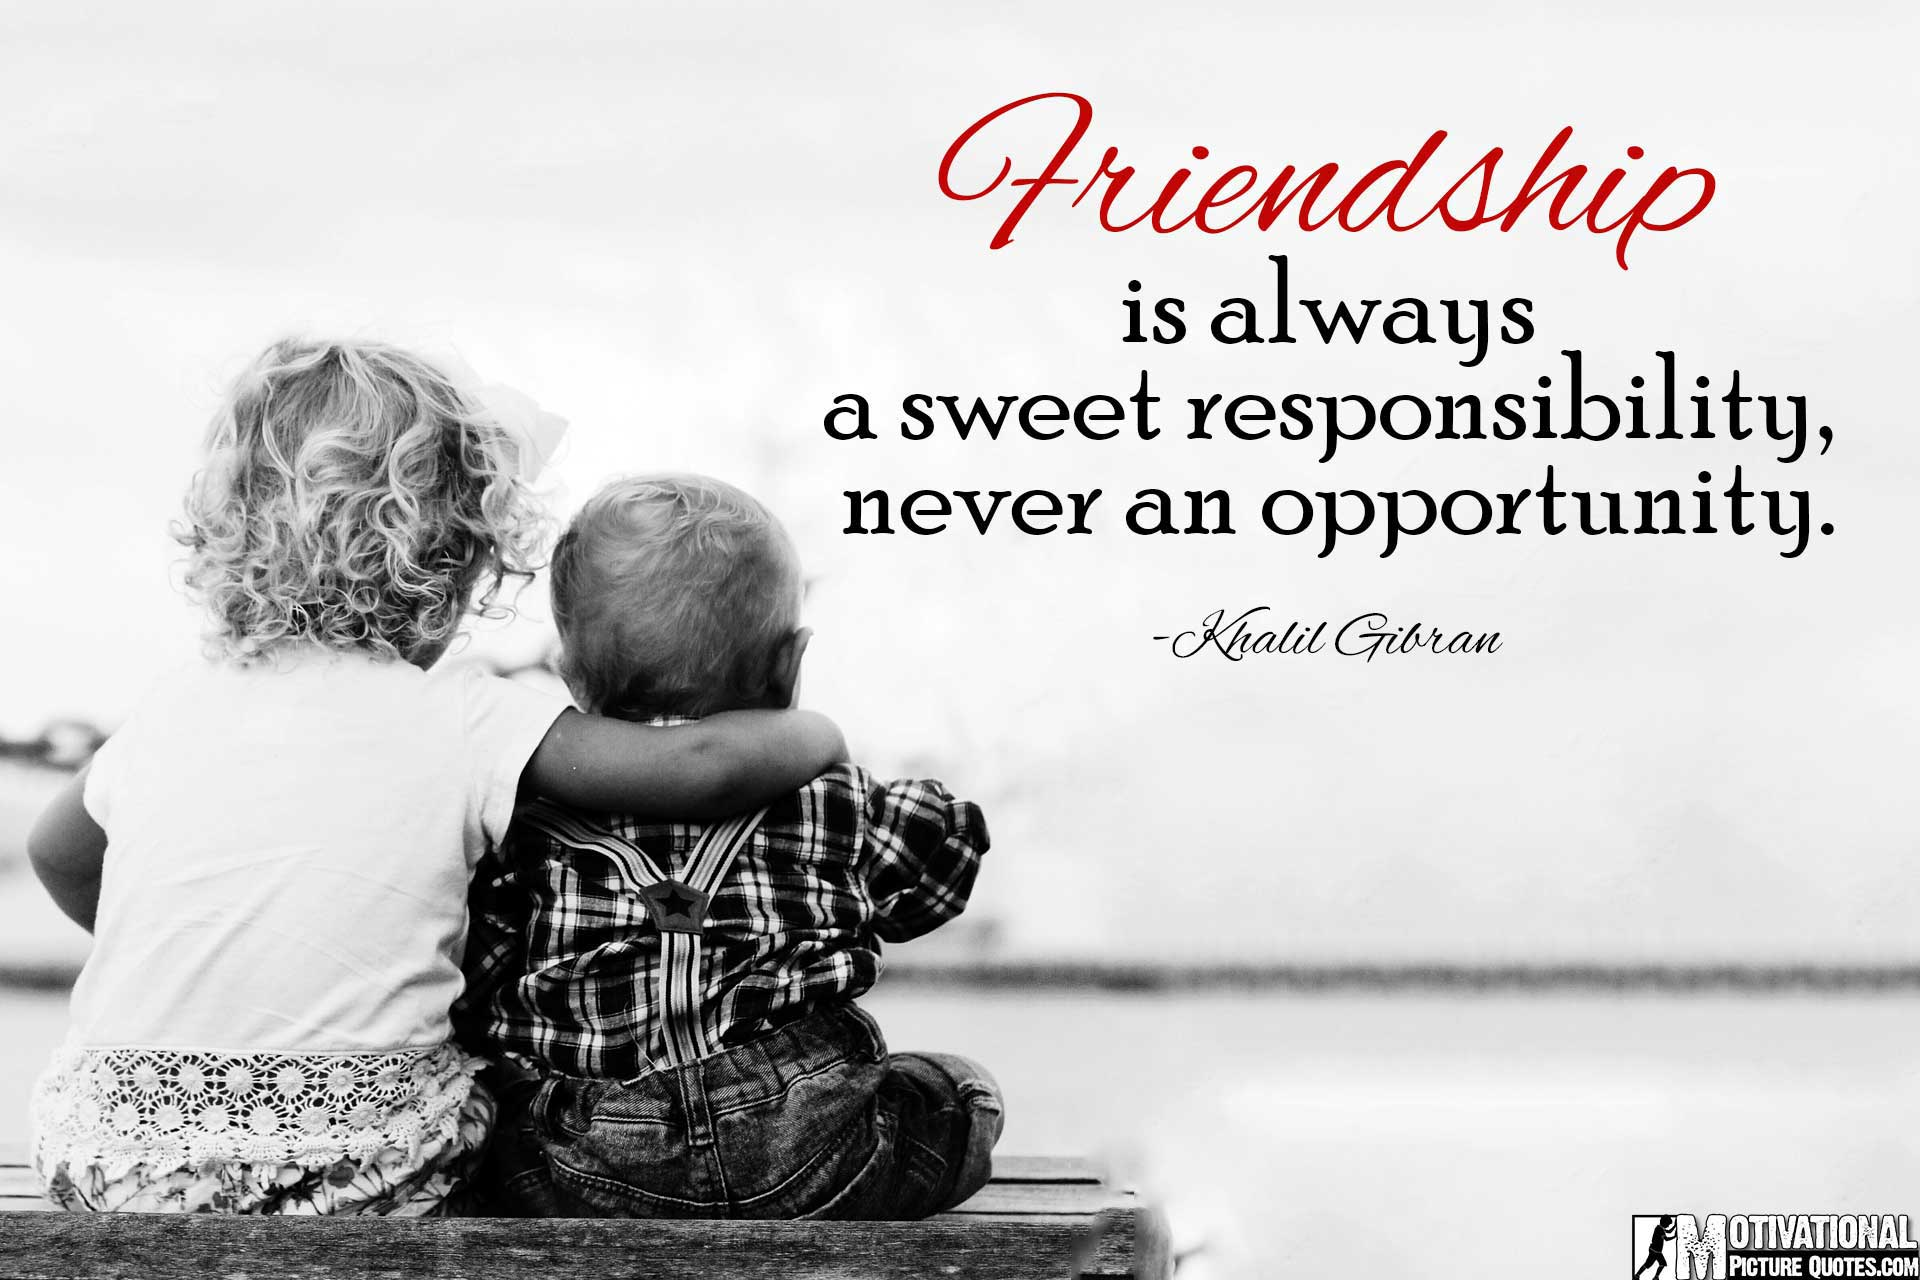 Quotes And Images About Friendship Endearing 25 Inspirational Friendship Quotes Images  Free Download